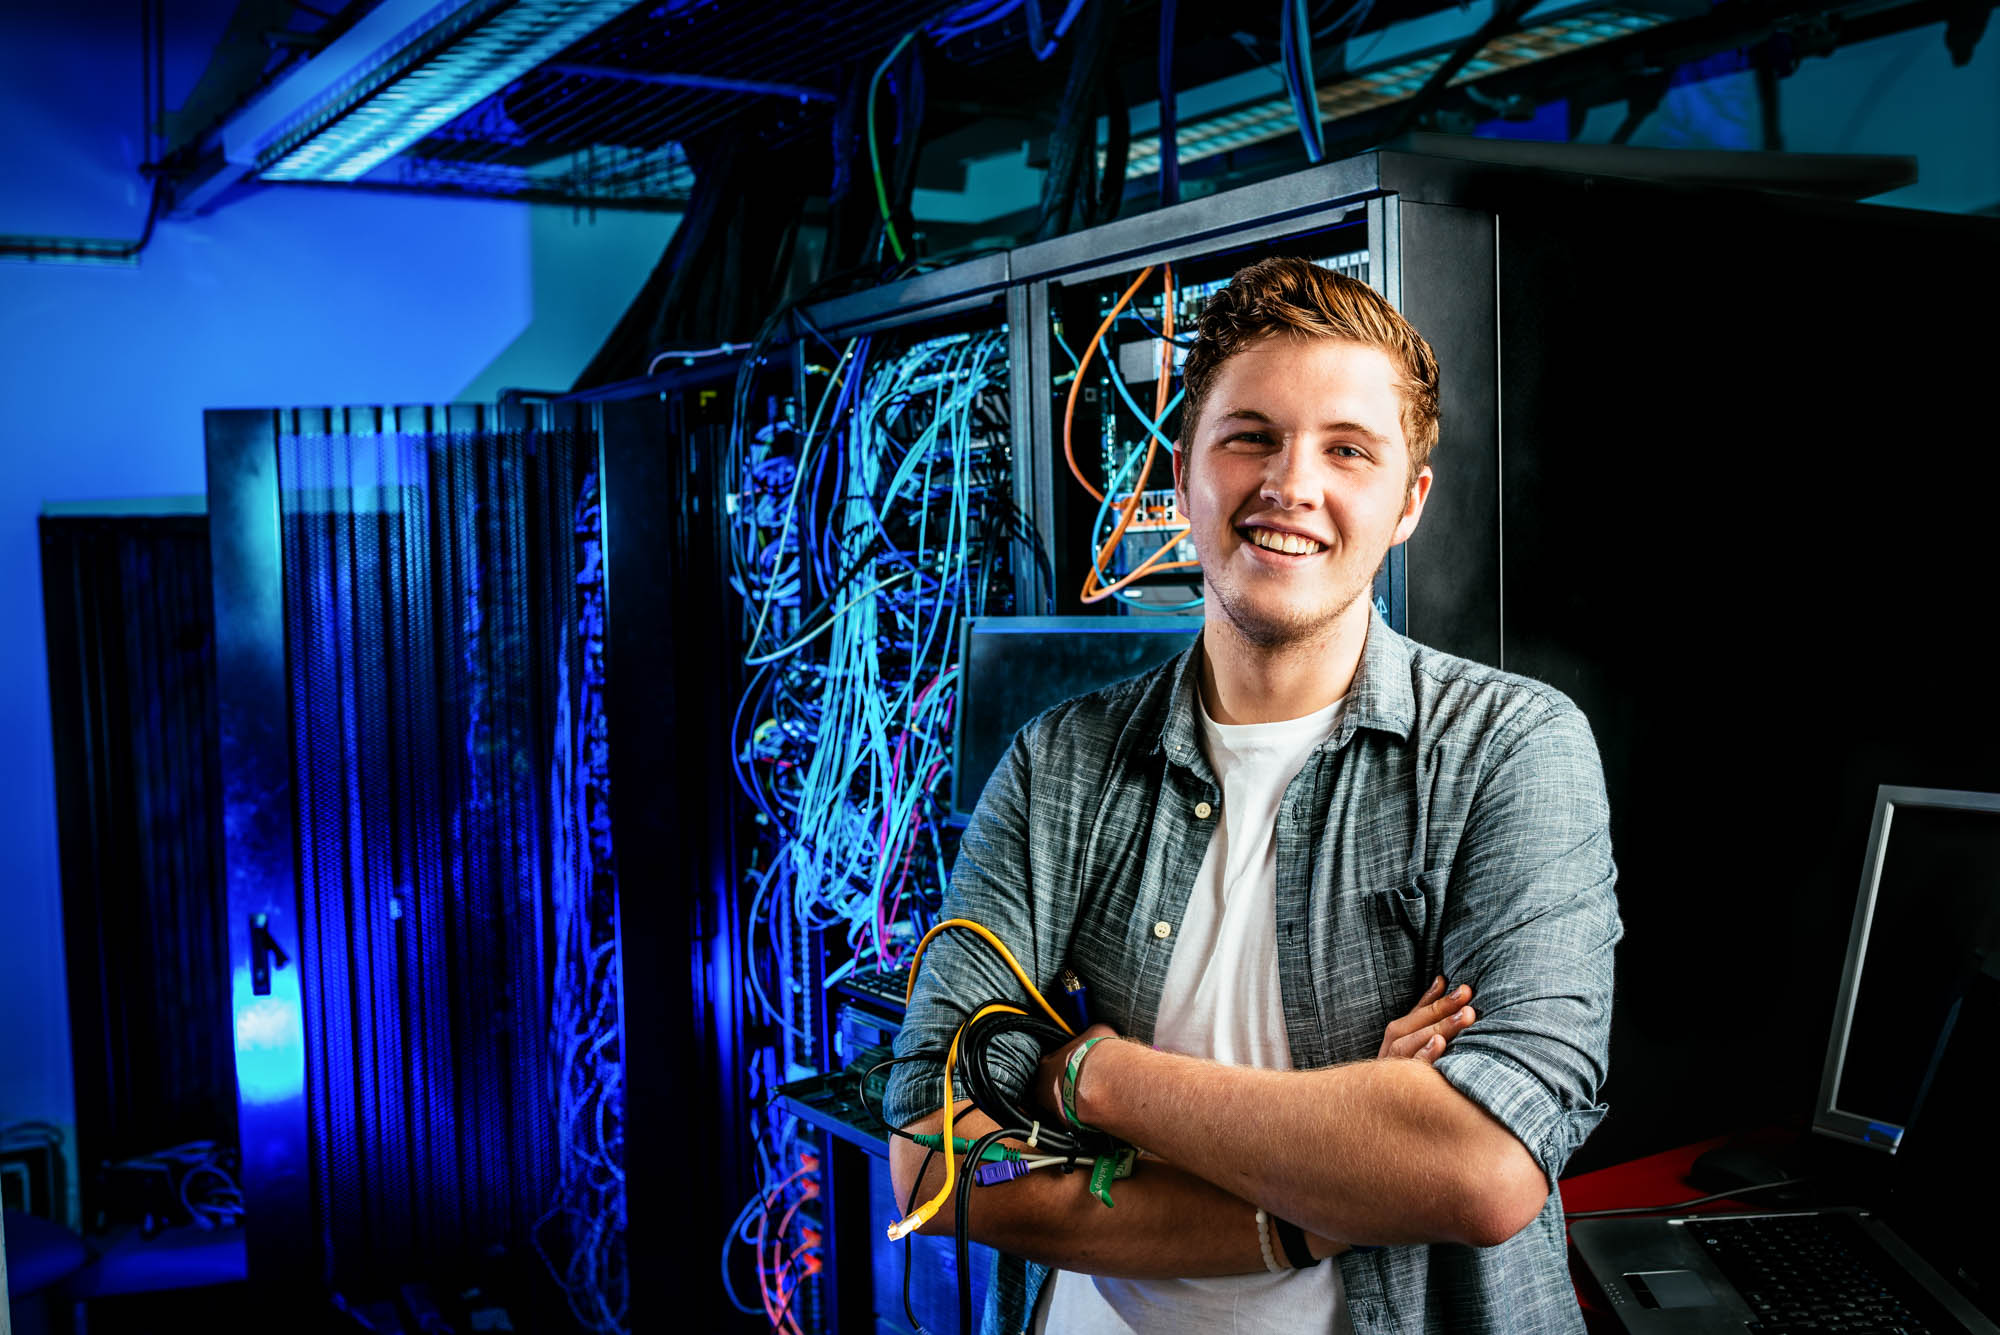 A photo of an IT student holding cables in front of a large networking cabinet